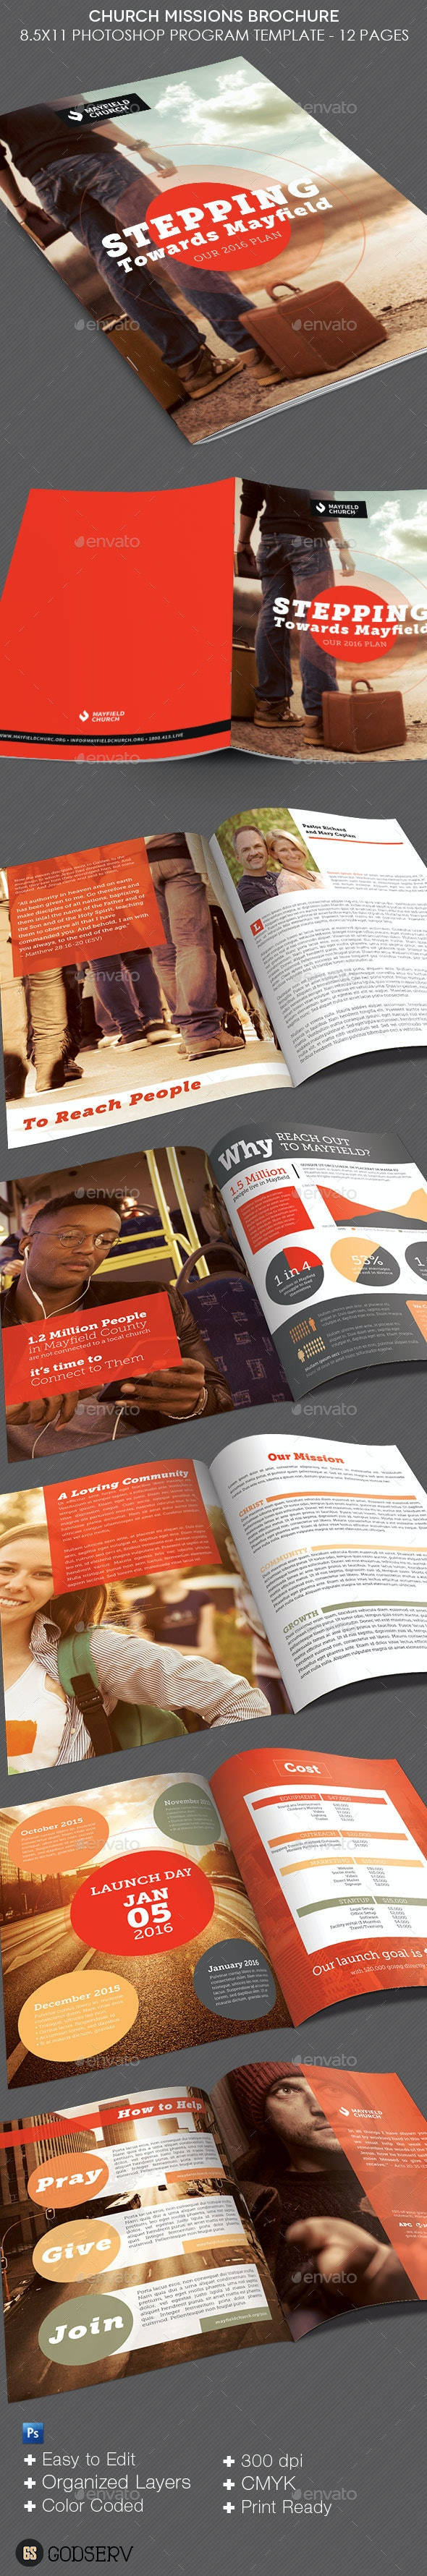 Church Missions Brochure Template - Informational Brochures